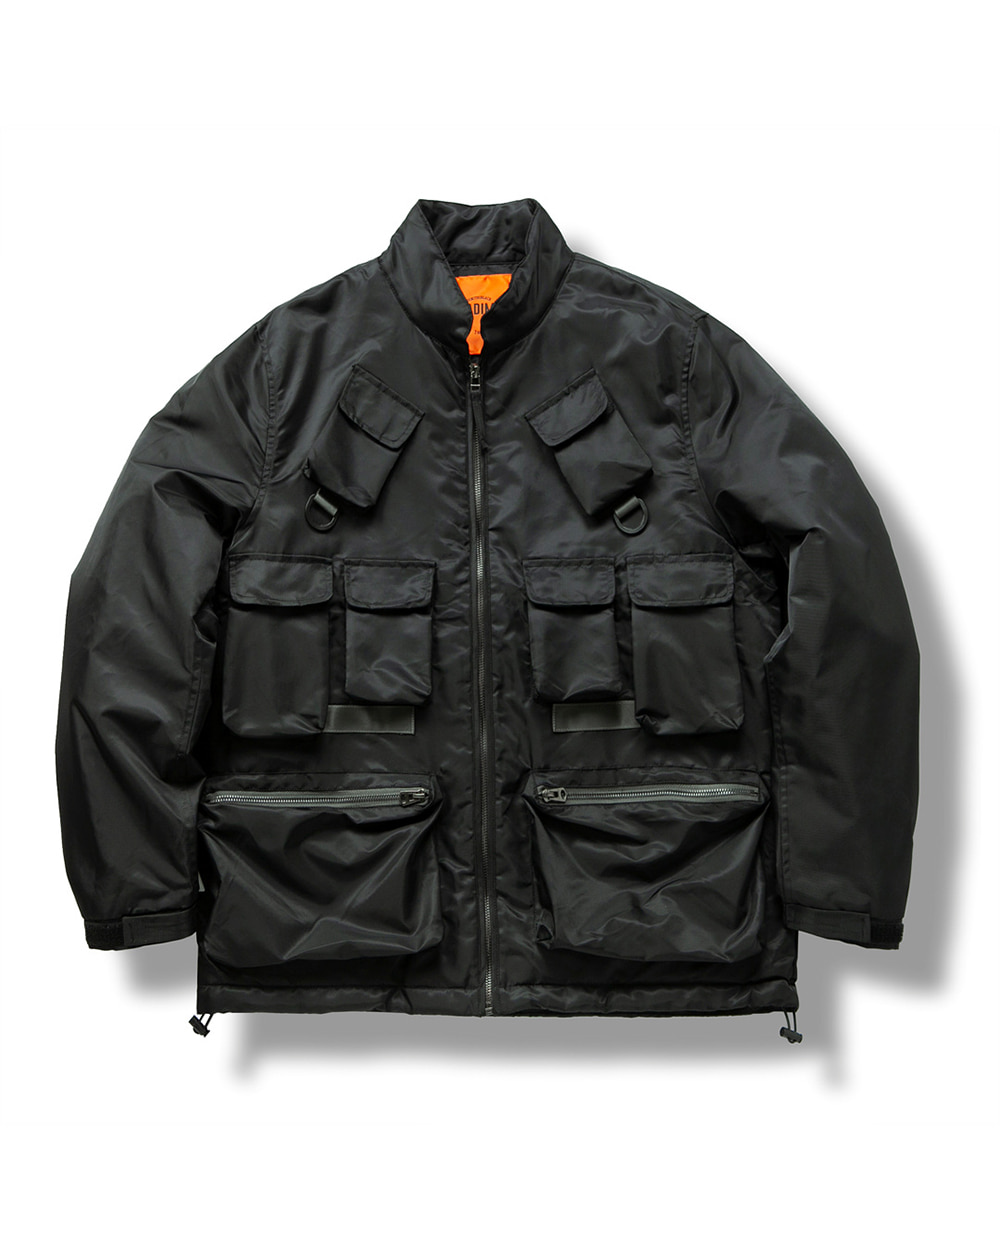 (VLADIMIR) FISHERMAN THINSULATE JACKET BLACK